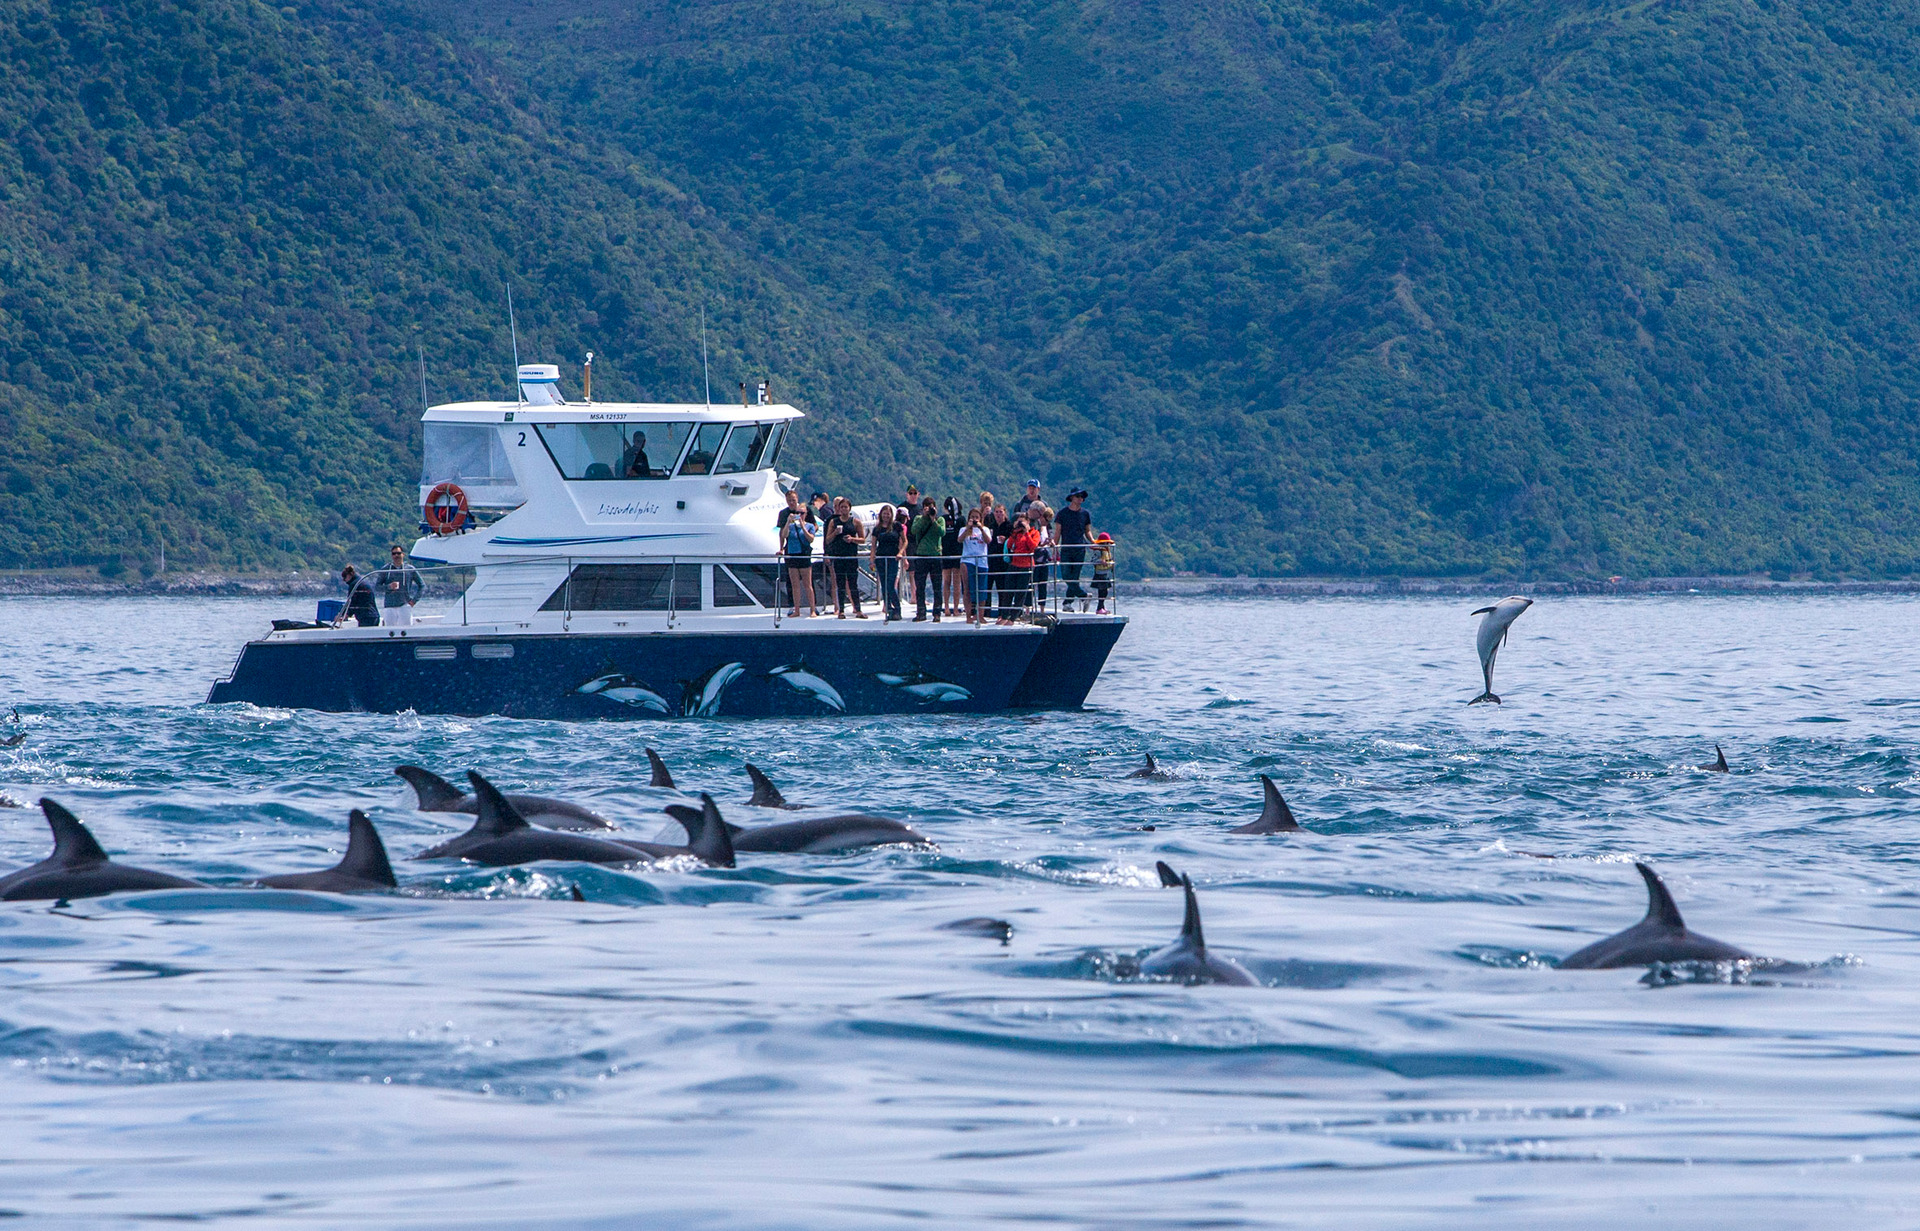 Tourism New Zealand says campaign to promote shoulder seasons working